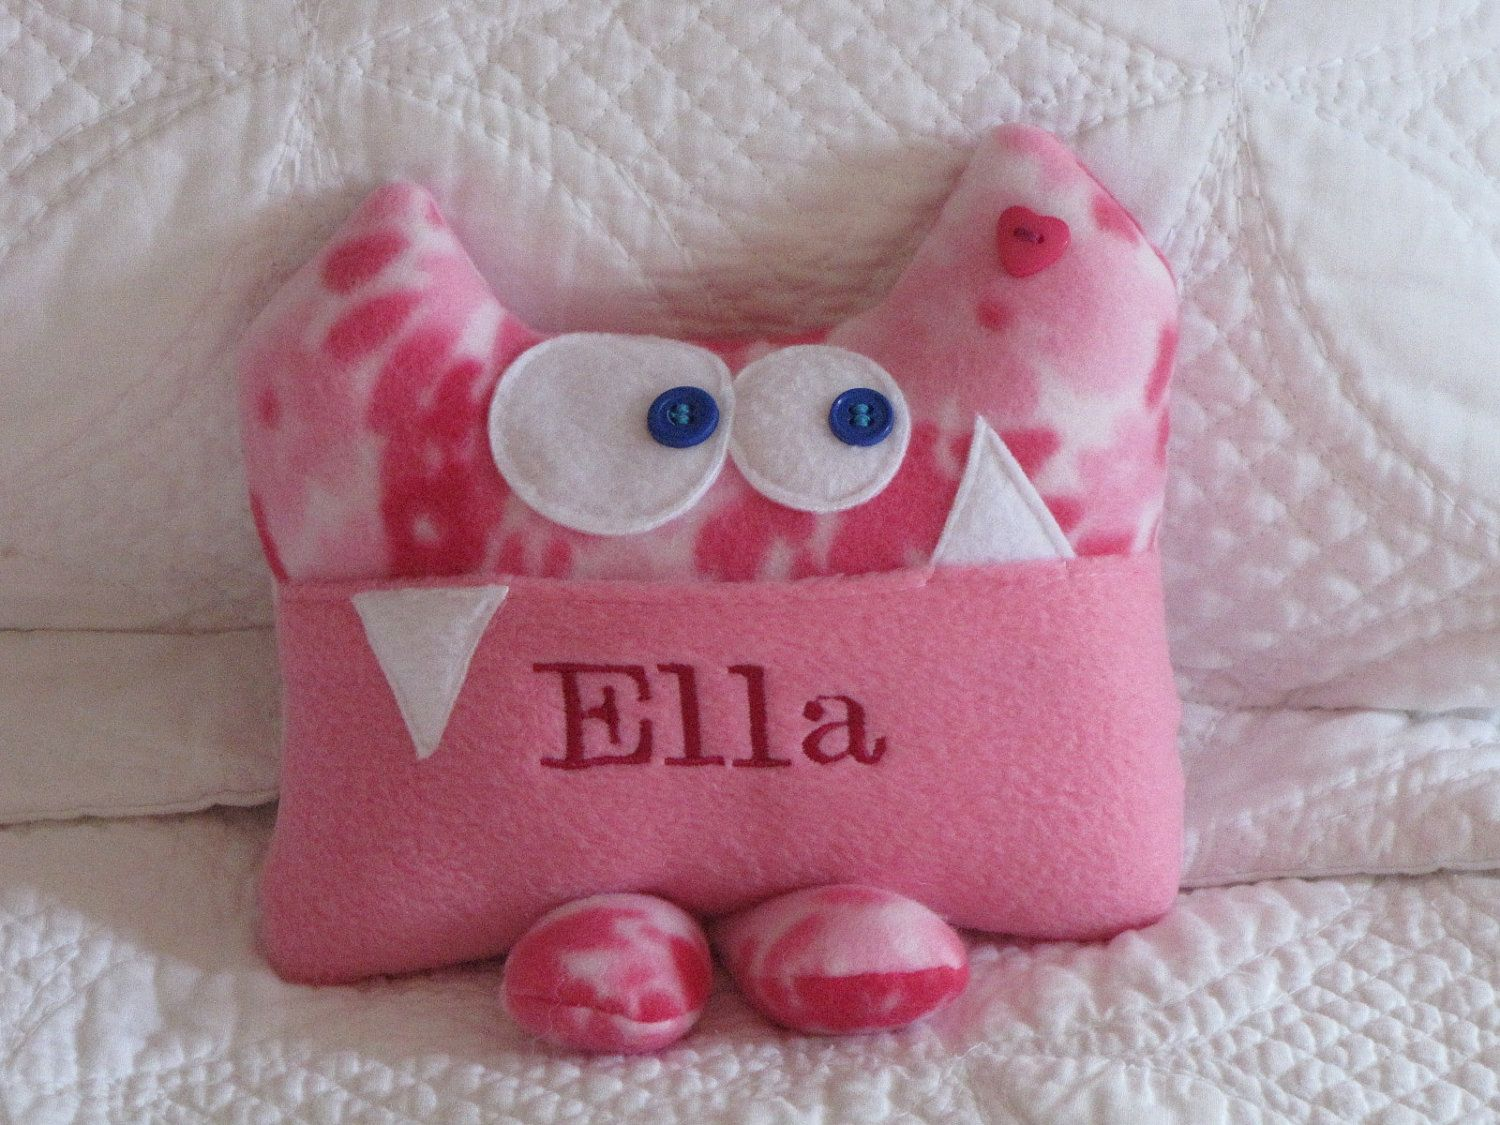 Cute Tooth Pillow : What a cute idea! A Personalized Tooth Fairy Pillow by Kooky Critters. $21.00, via Etsy ...